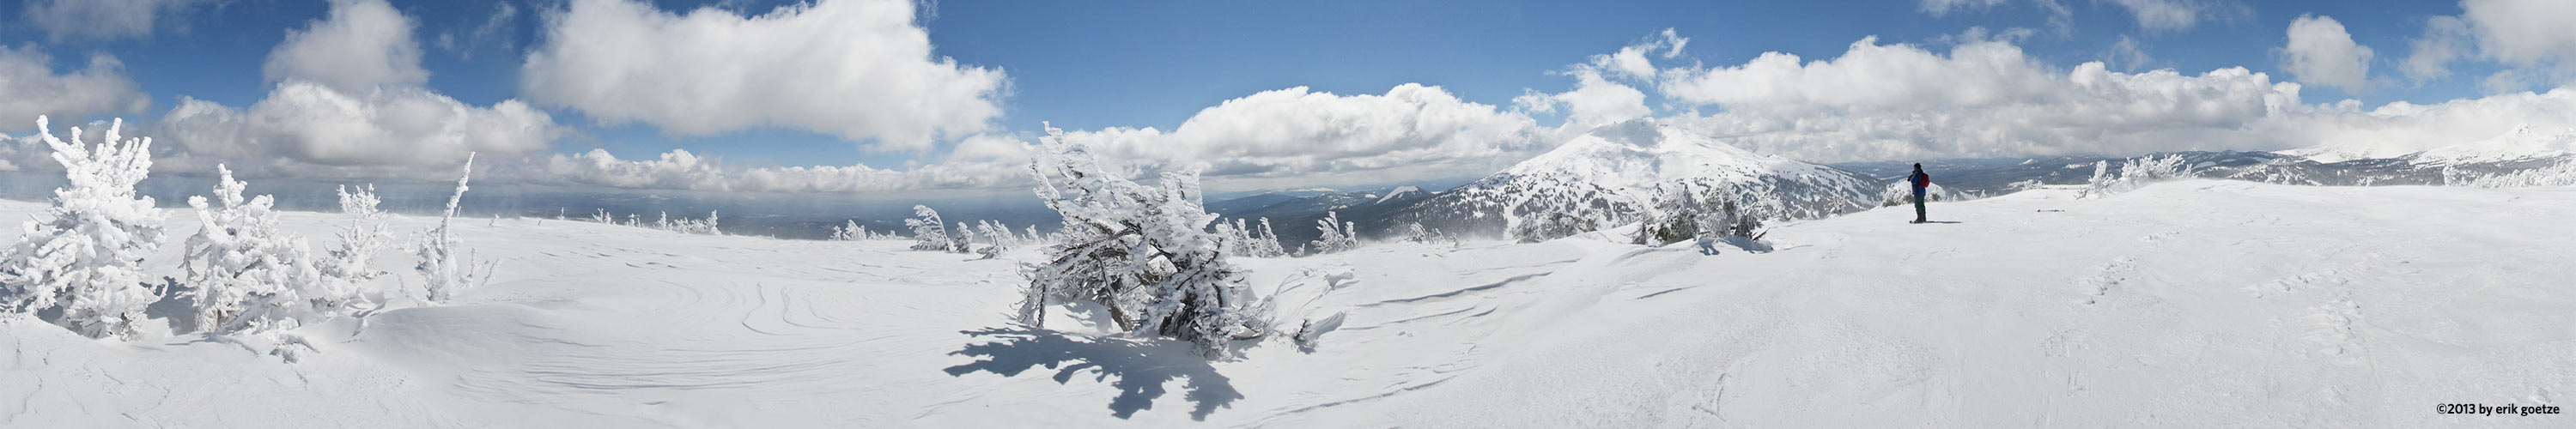 View of Mt. Bachelor from the top of Tumalo Mtn, Oregon